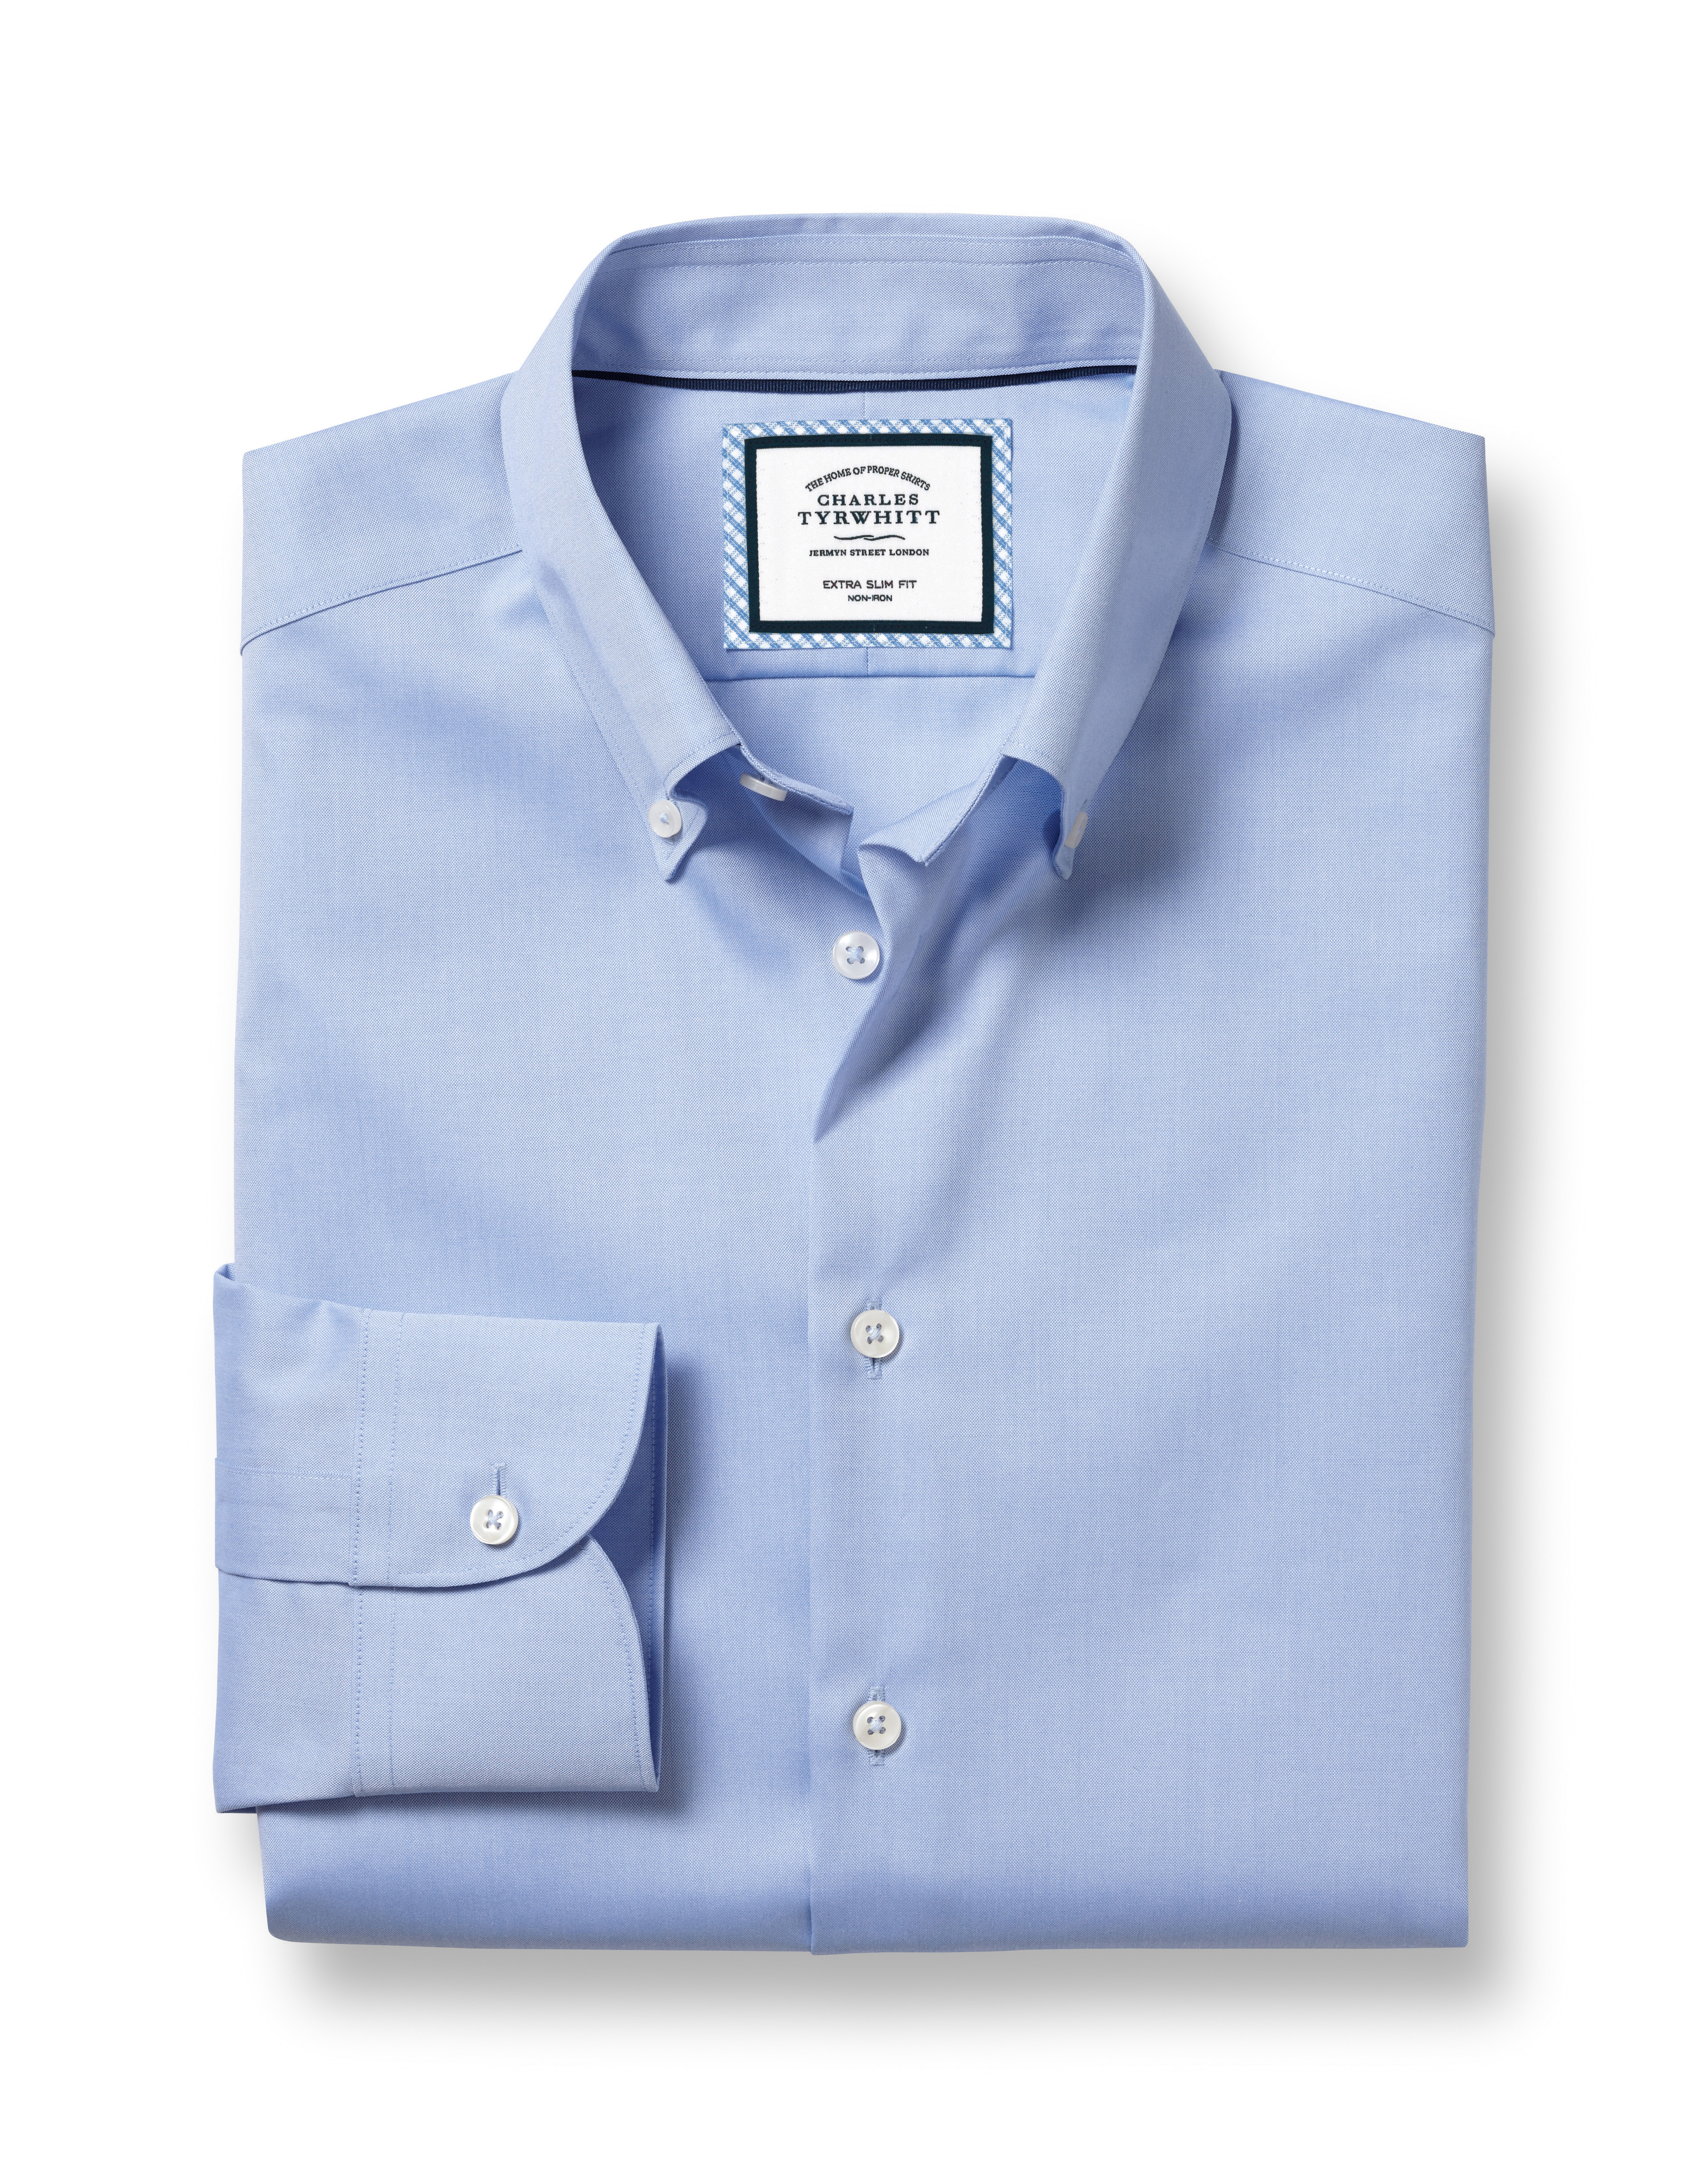 Extra Slim Fit Button-Down Business Casual Non-Iron Sky Blue Cotton Formal Shirt Single Cuff Size 16